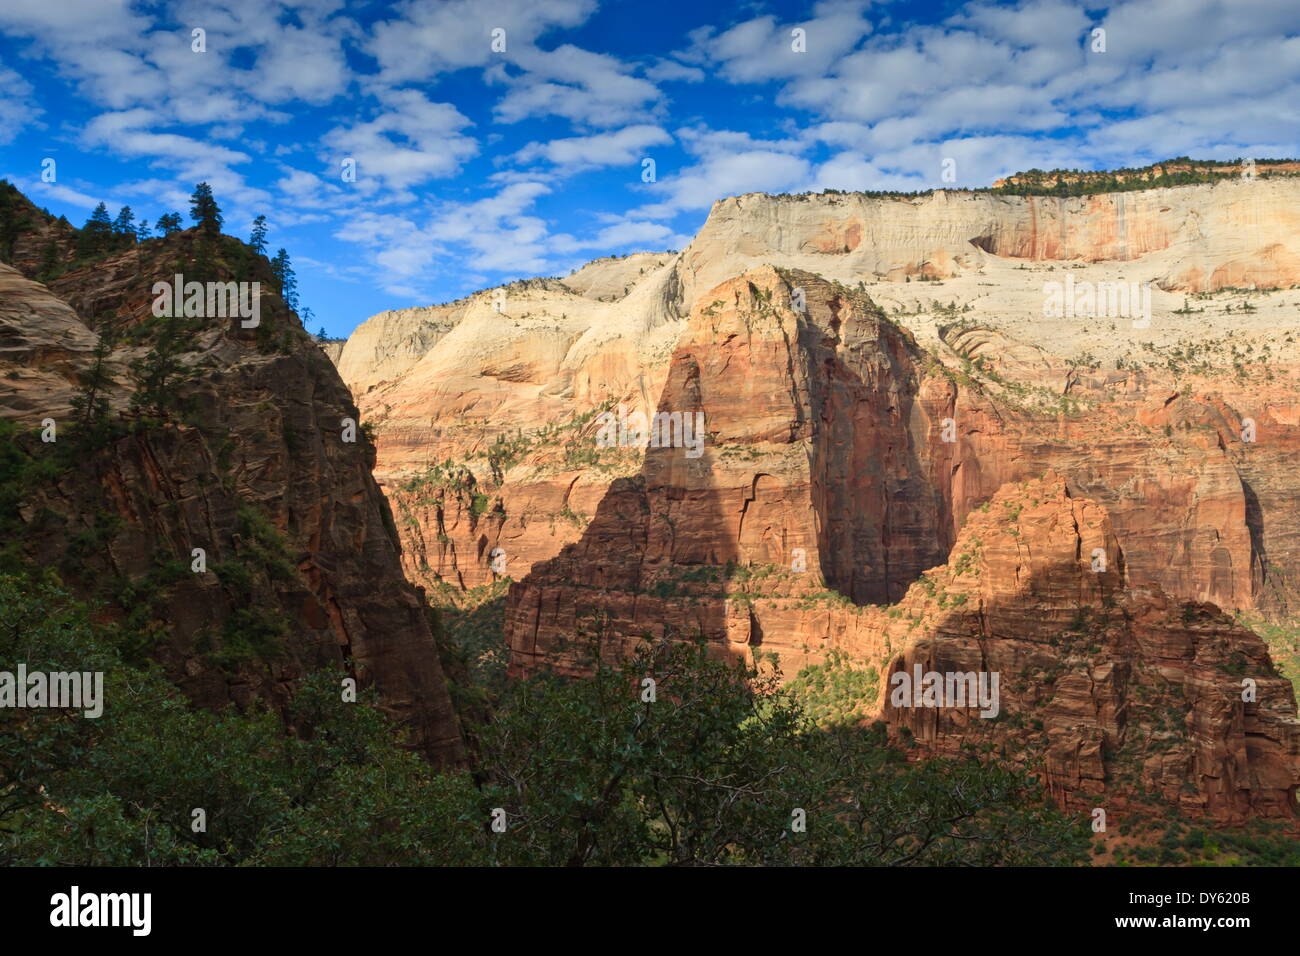 View into Zion Canyon from trail to Observation Point, Zion National Park, Utah, United States of America, North America - Stock Image